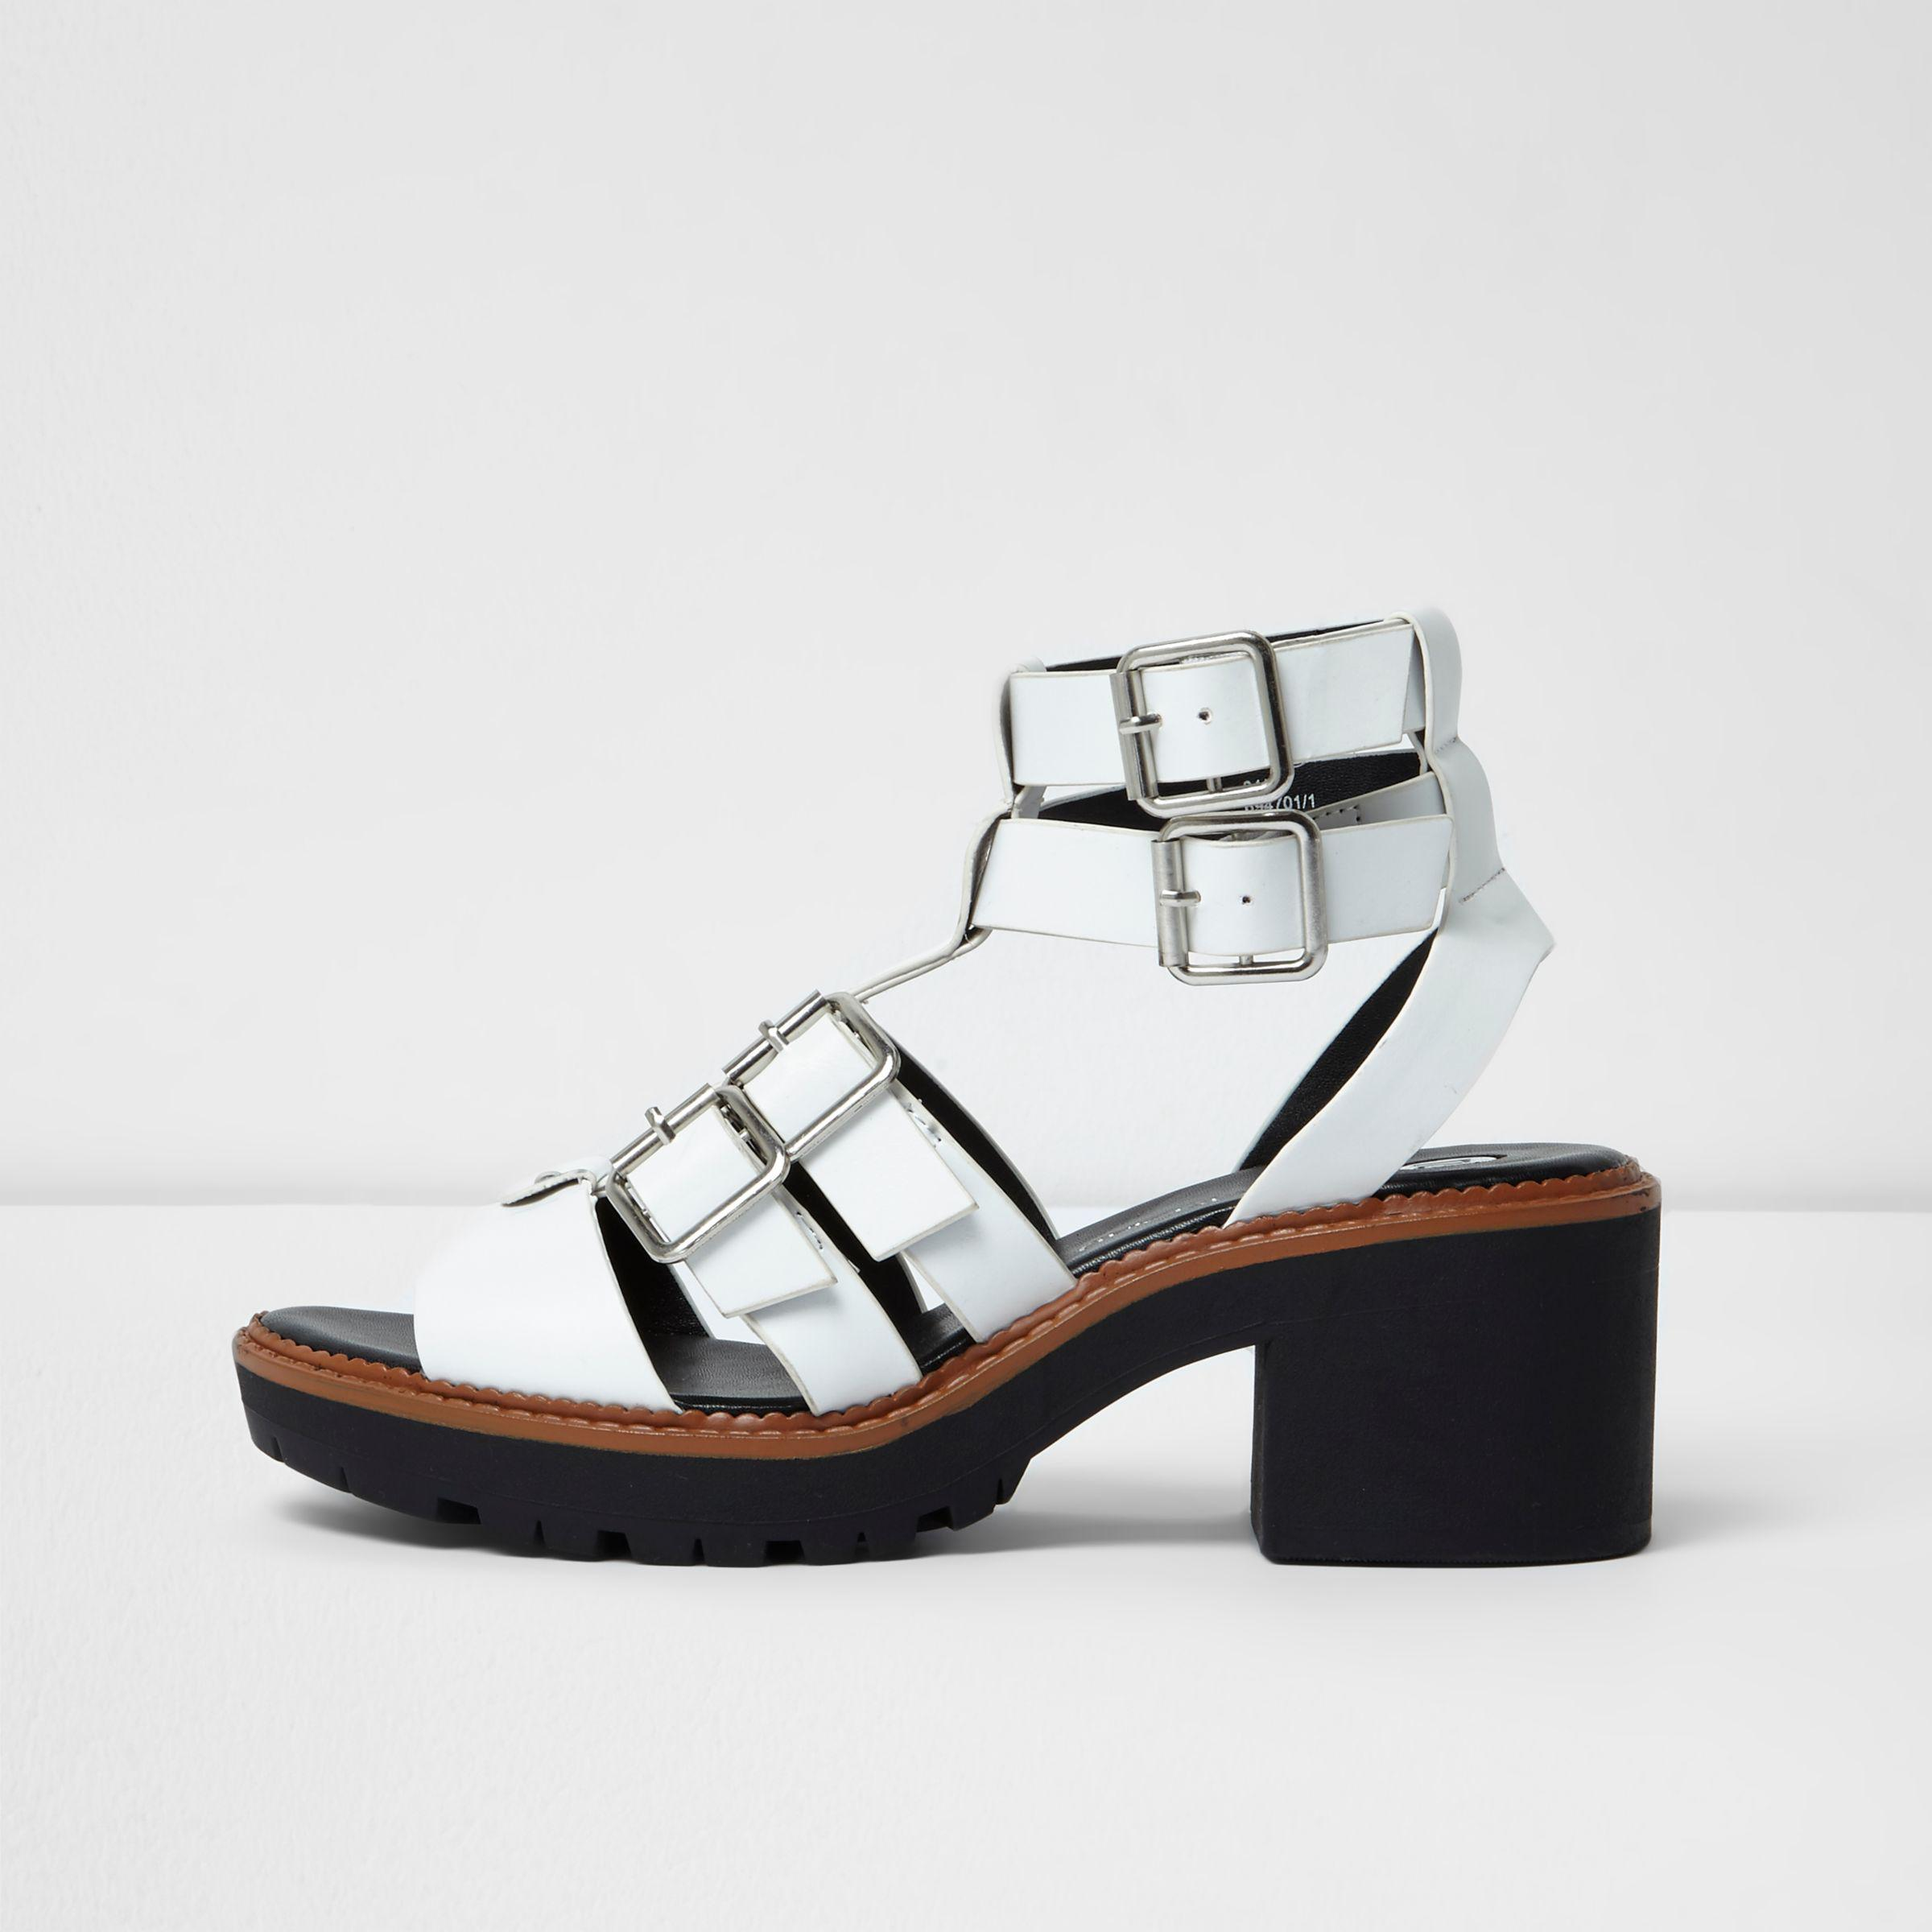 c459638e4b2 River Island White Multi Buckle Strap Gladiator Sandals in White - Lyst